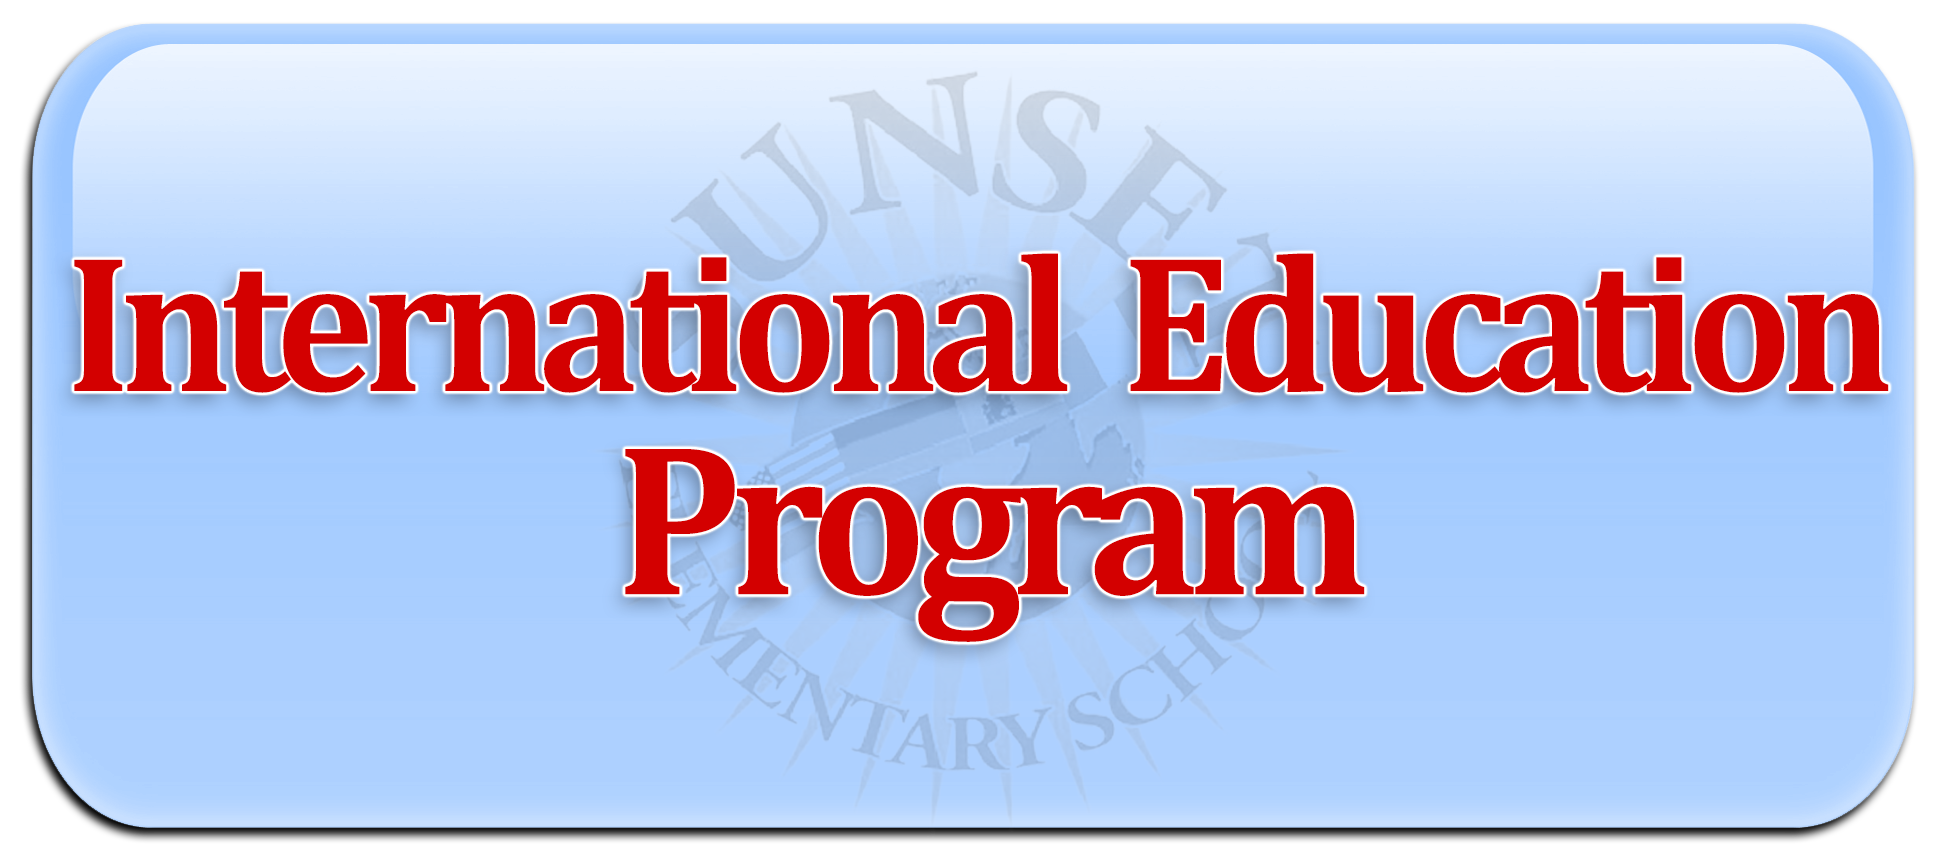 International Education Program